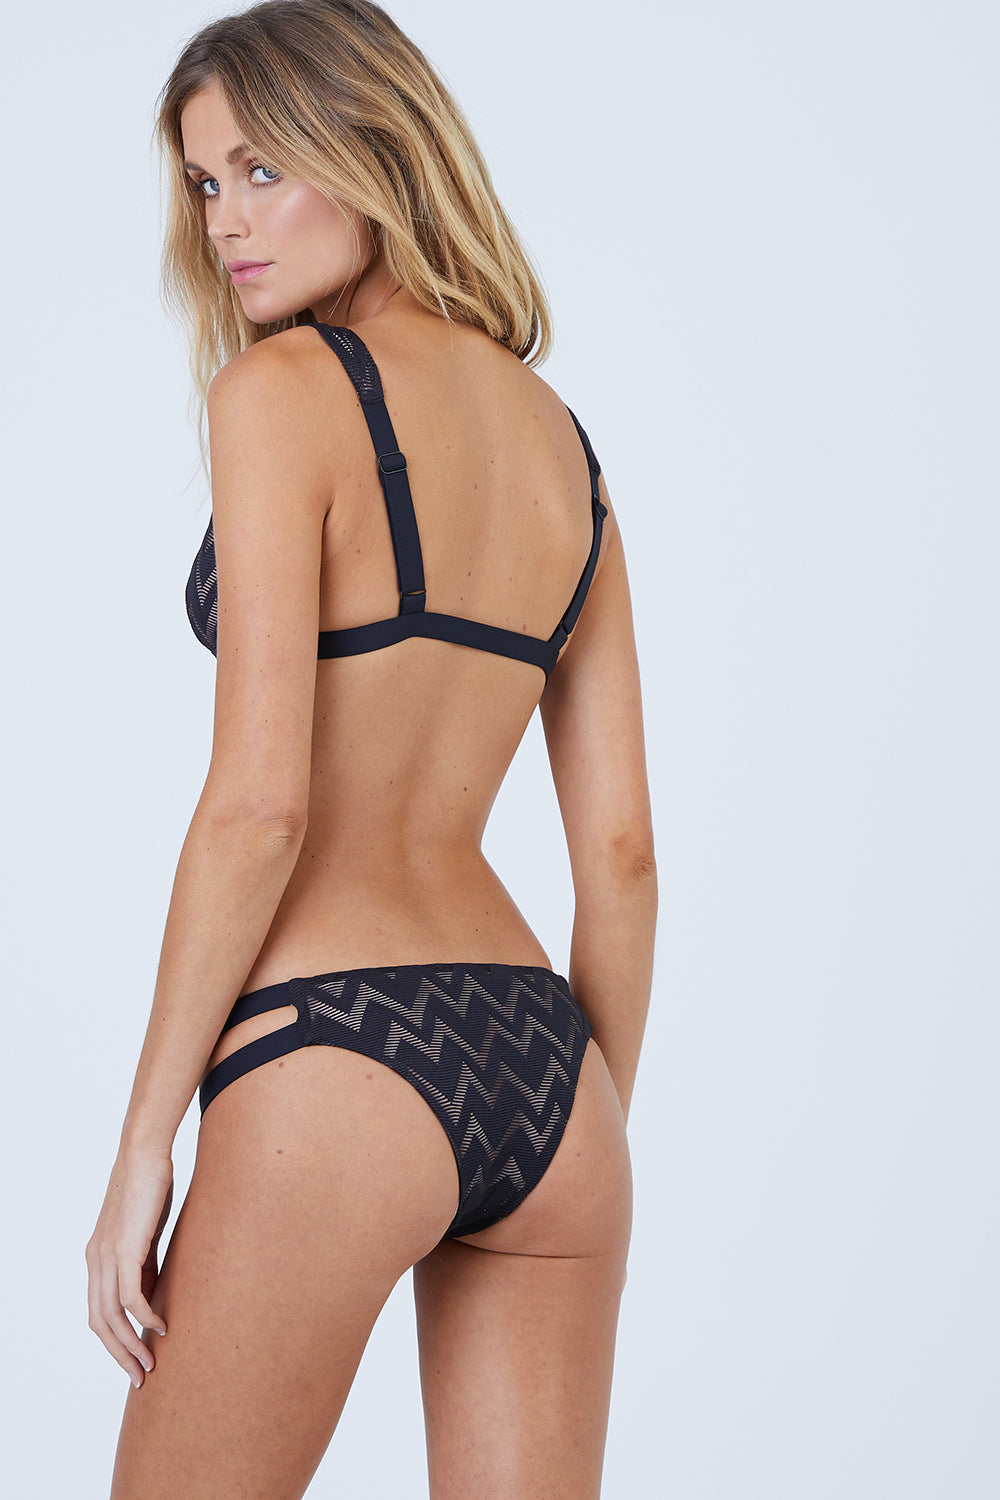 Chloe Textured Double Strap Cut Out Minimal Bikini Bottom - Black Chevron Print